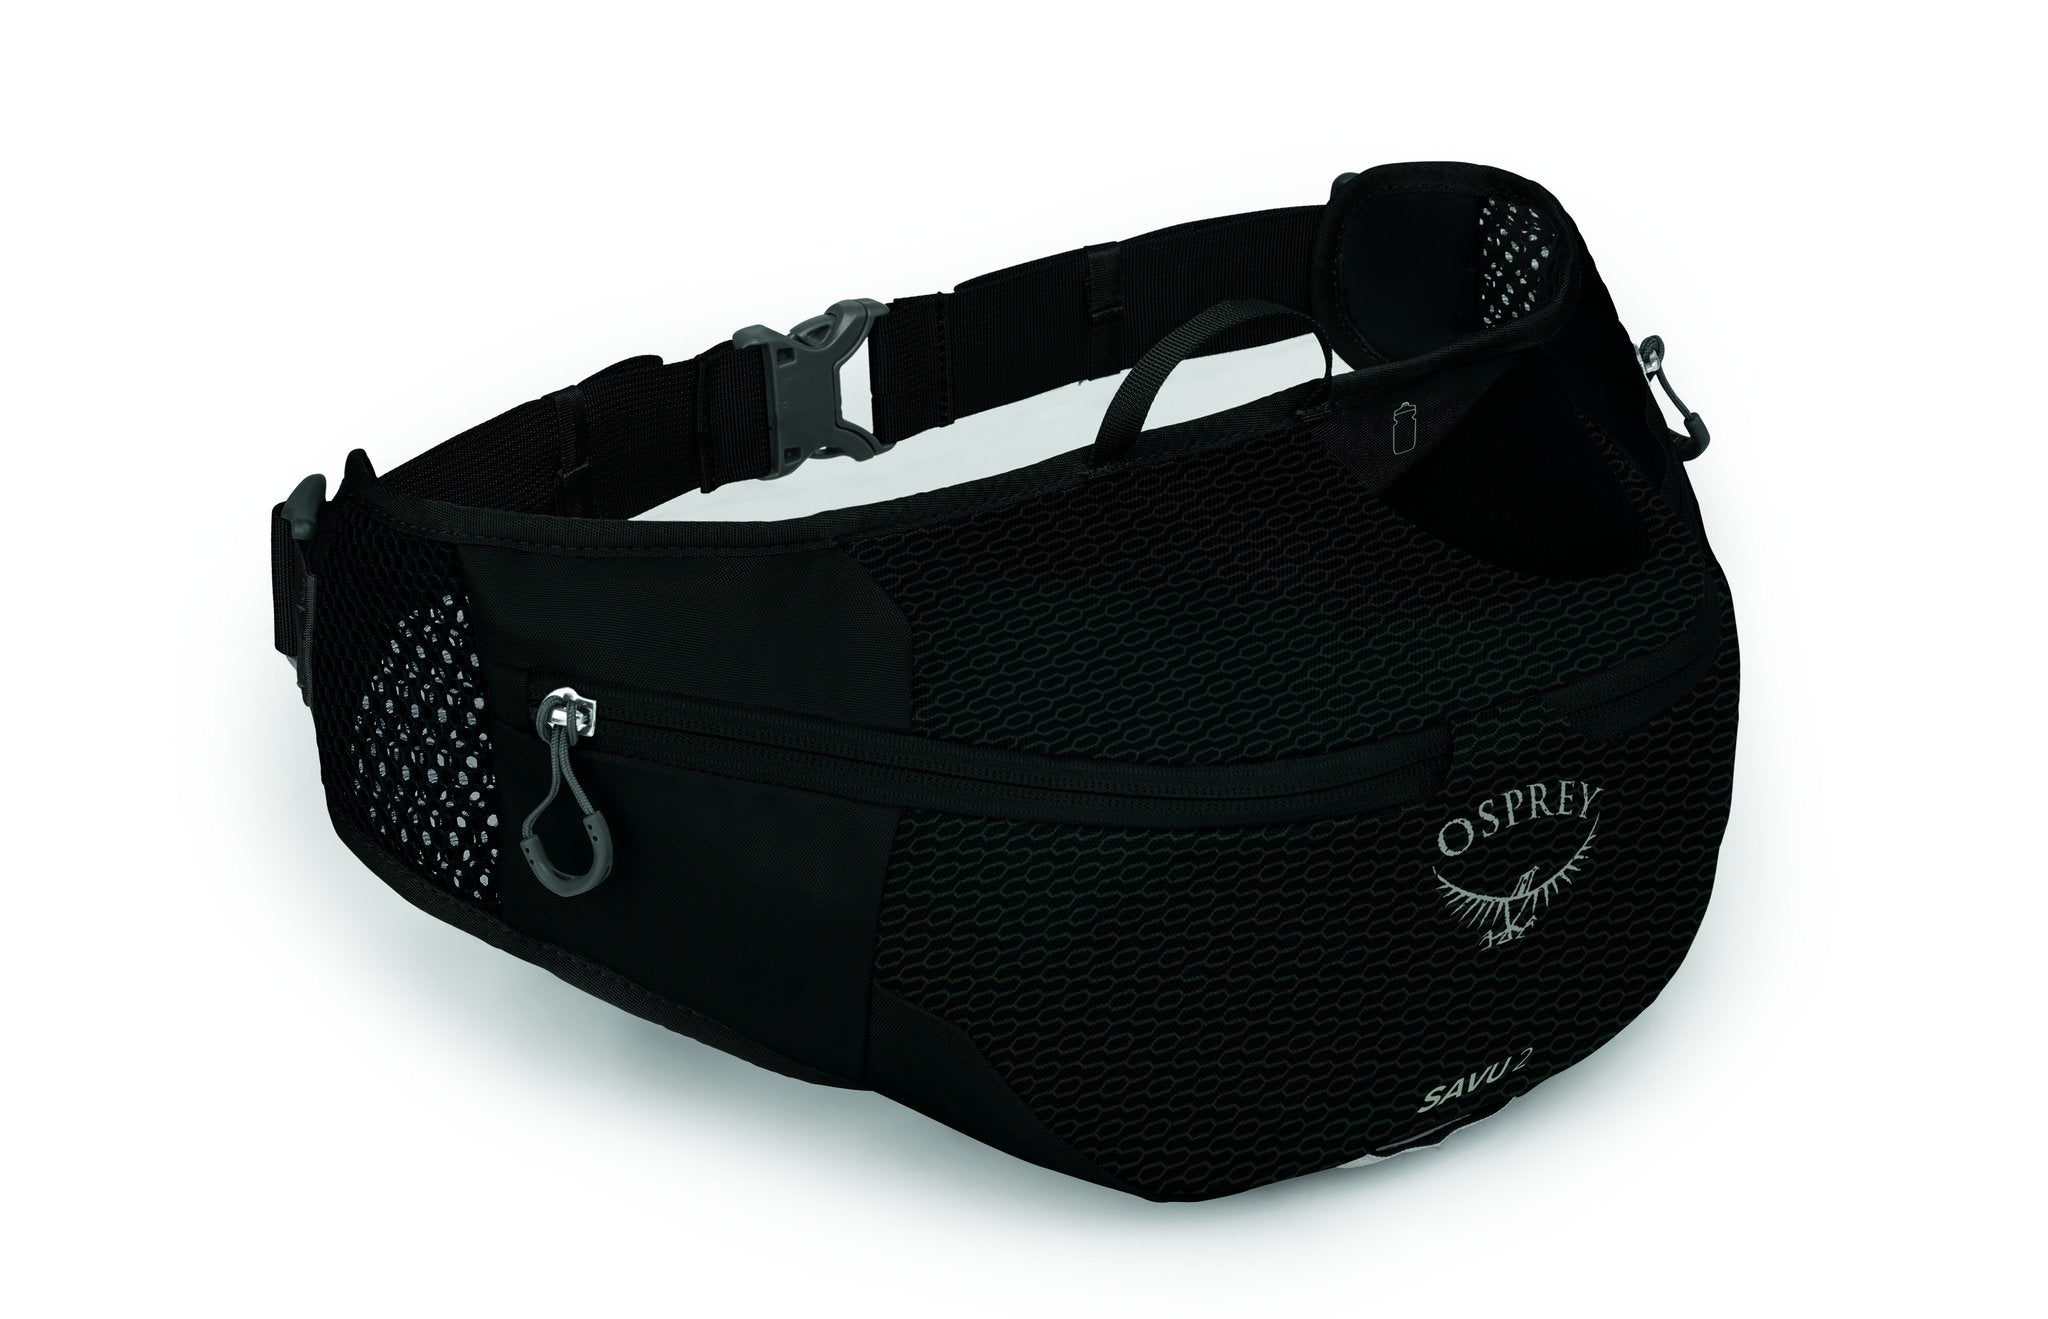 Father's day cycling bike gift guide idea hip pack fanny pack hydration